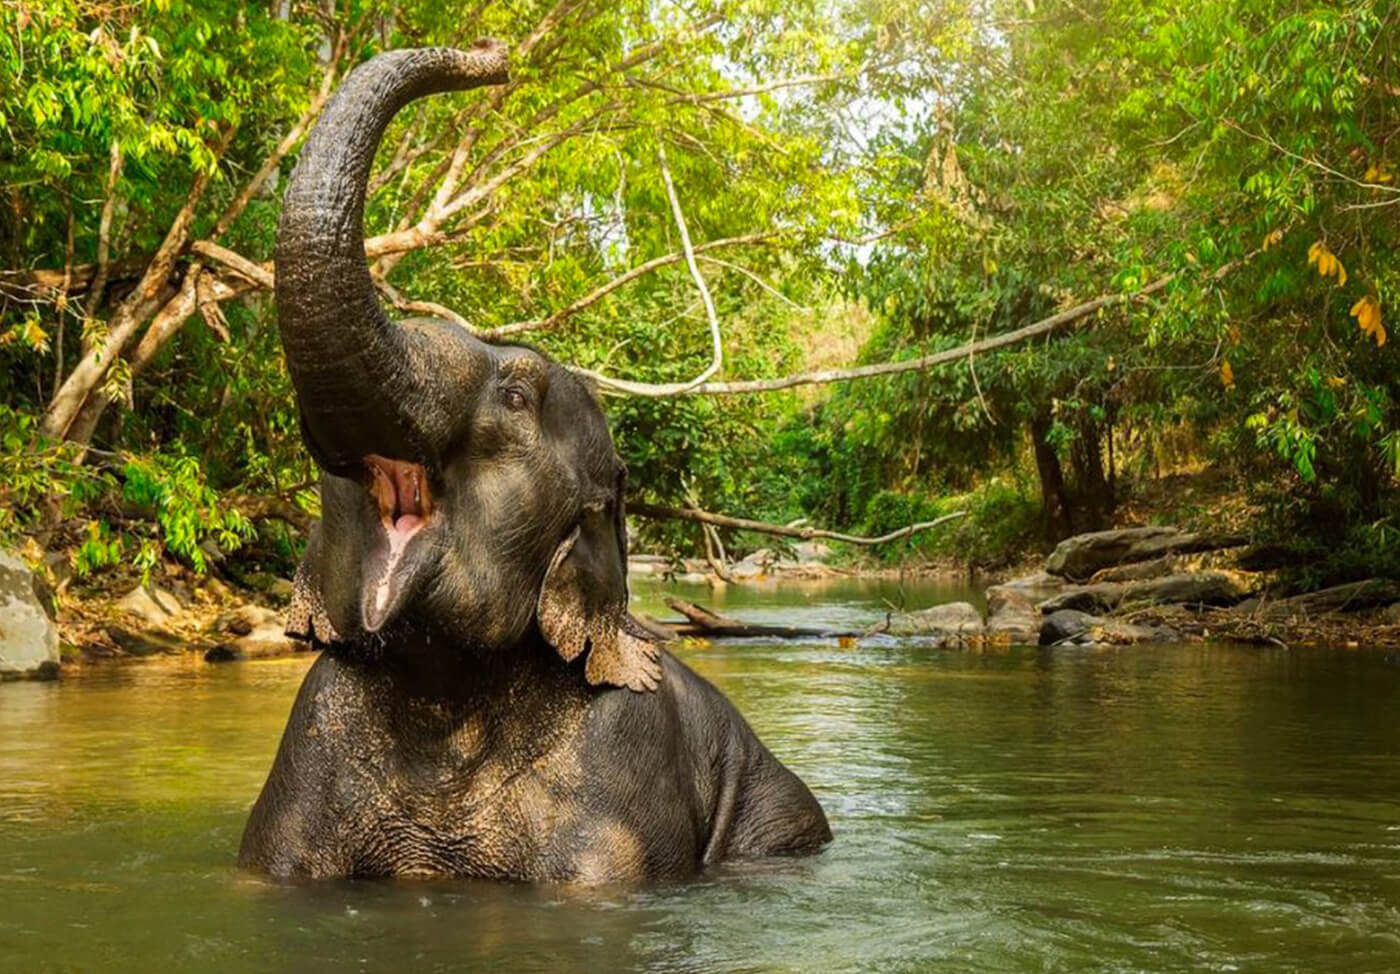 Elephant-Jungle-Sanctuary-Phuket-4